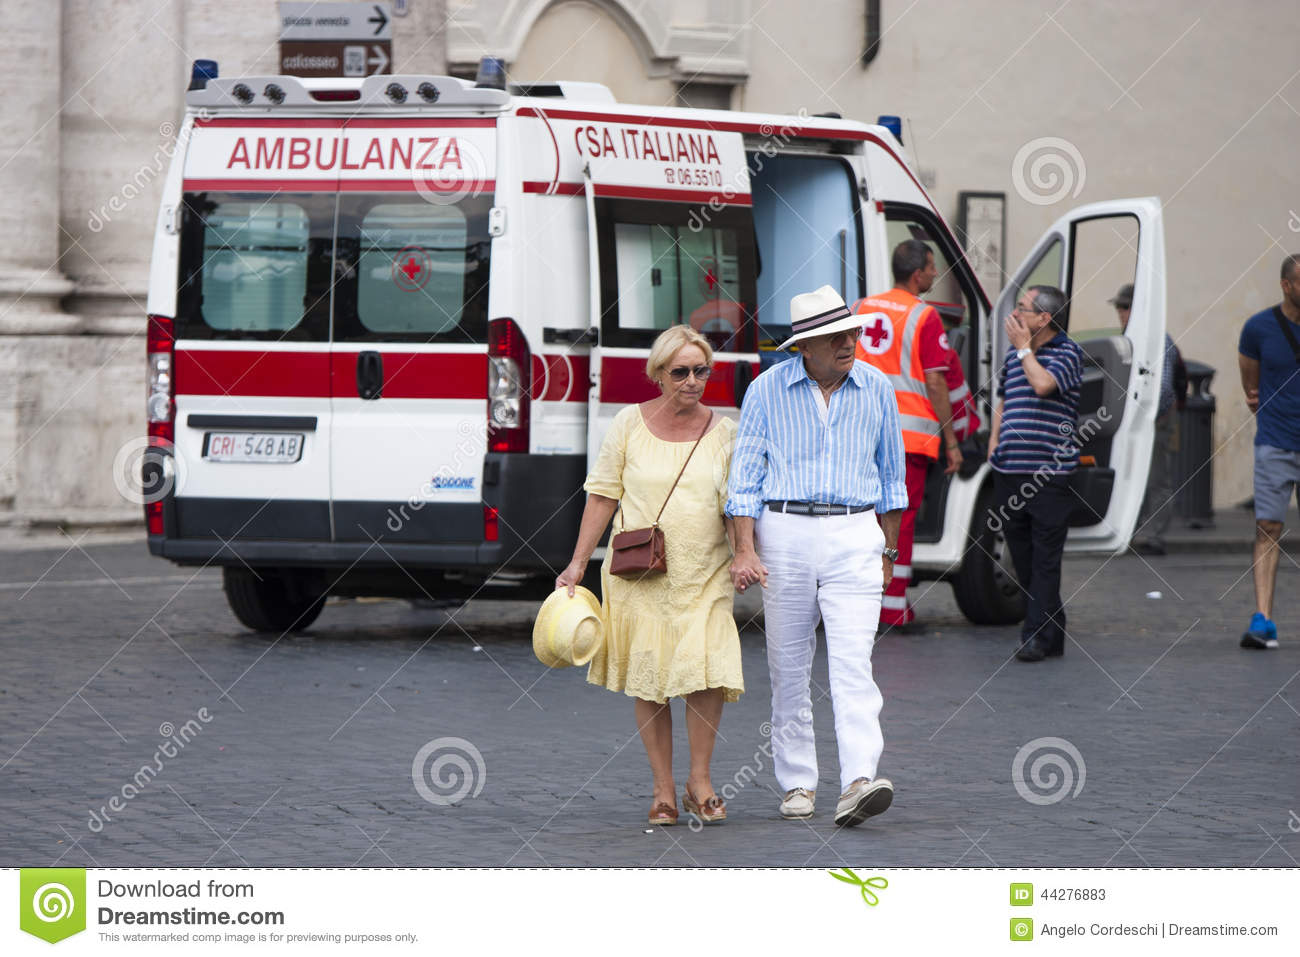 Ederly couple move away from ambulance